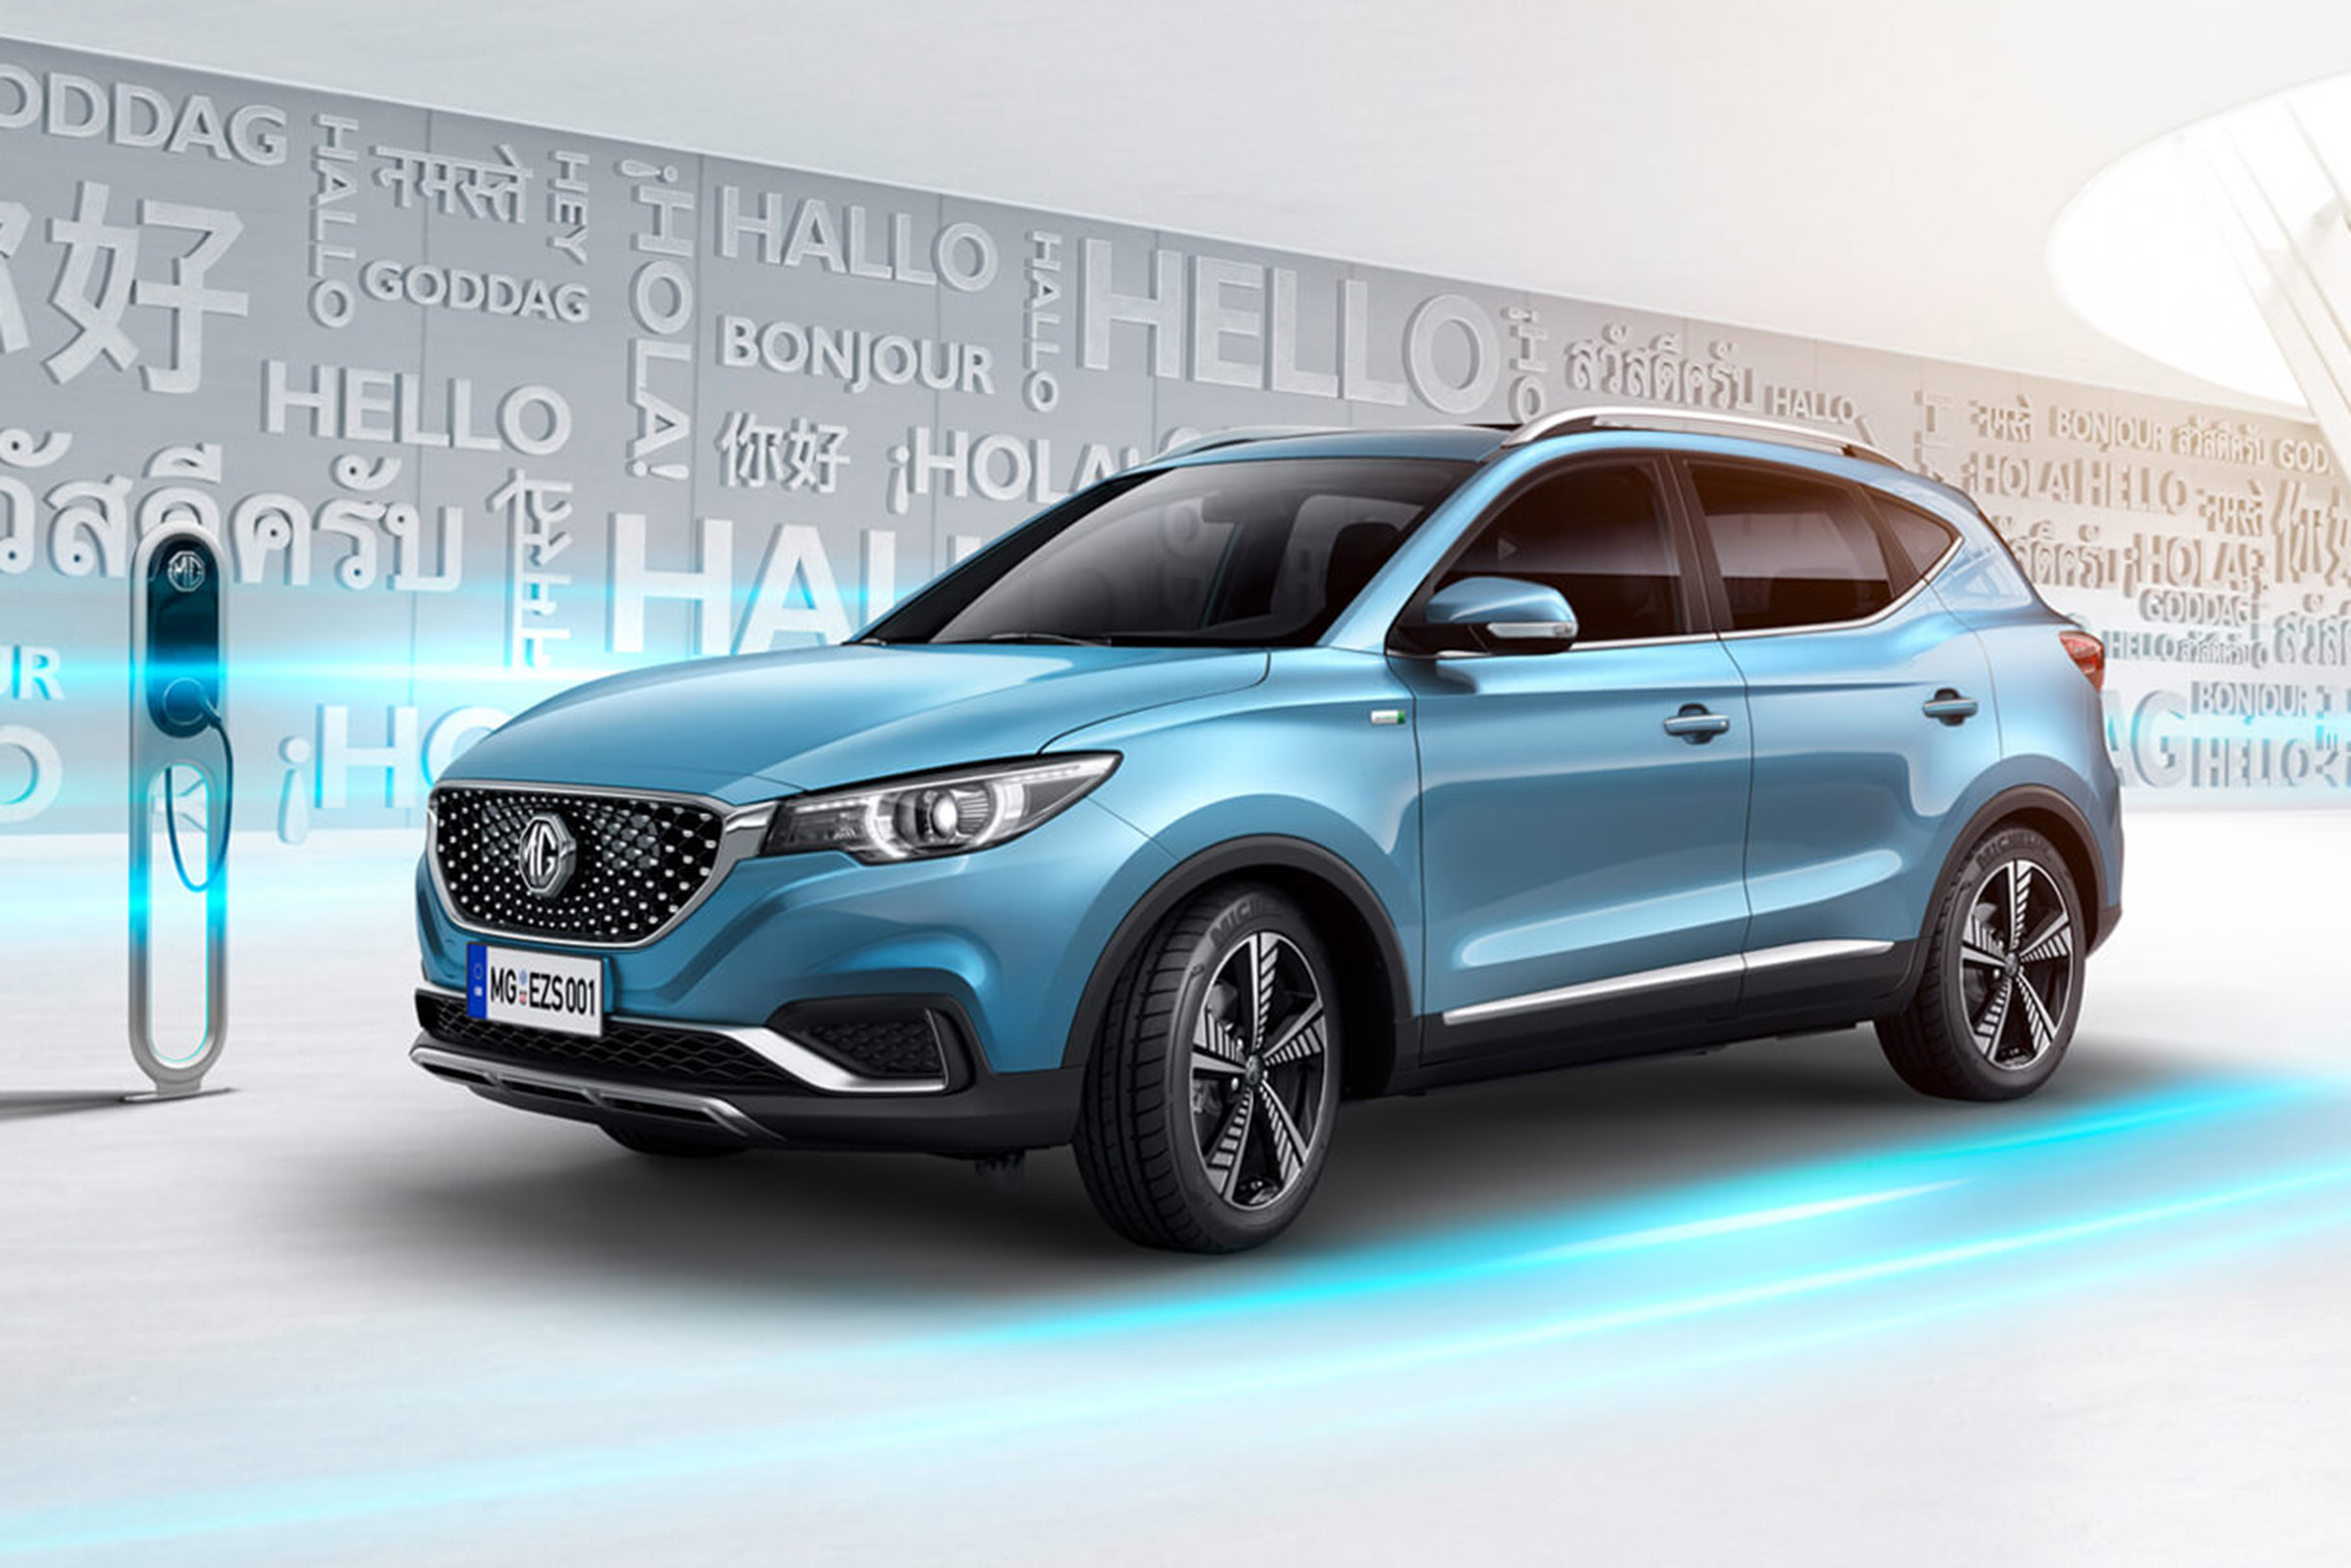 Chinese built MG brand to launch four new electric vehicles over the next five years including a sports car